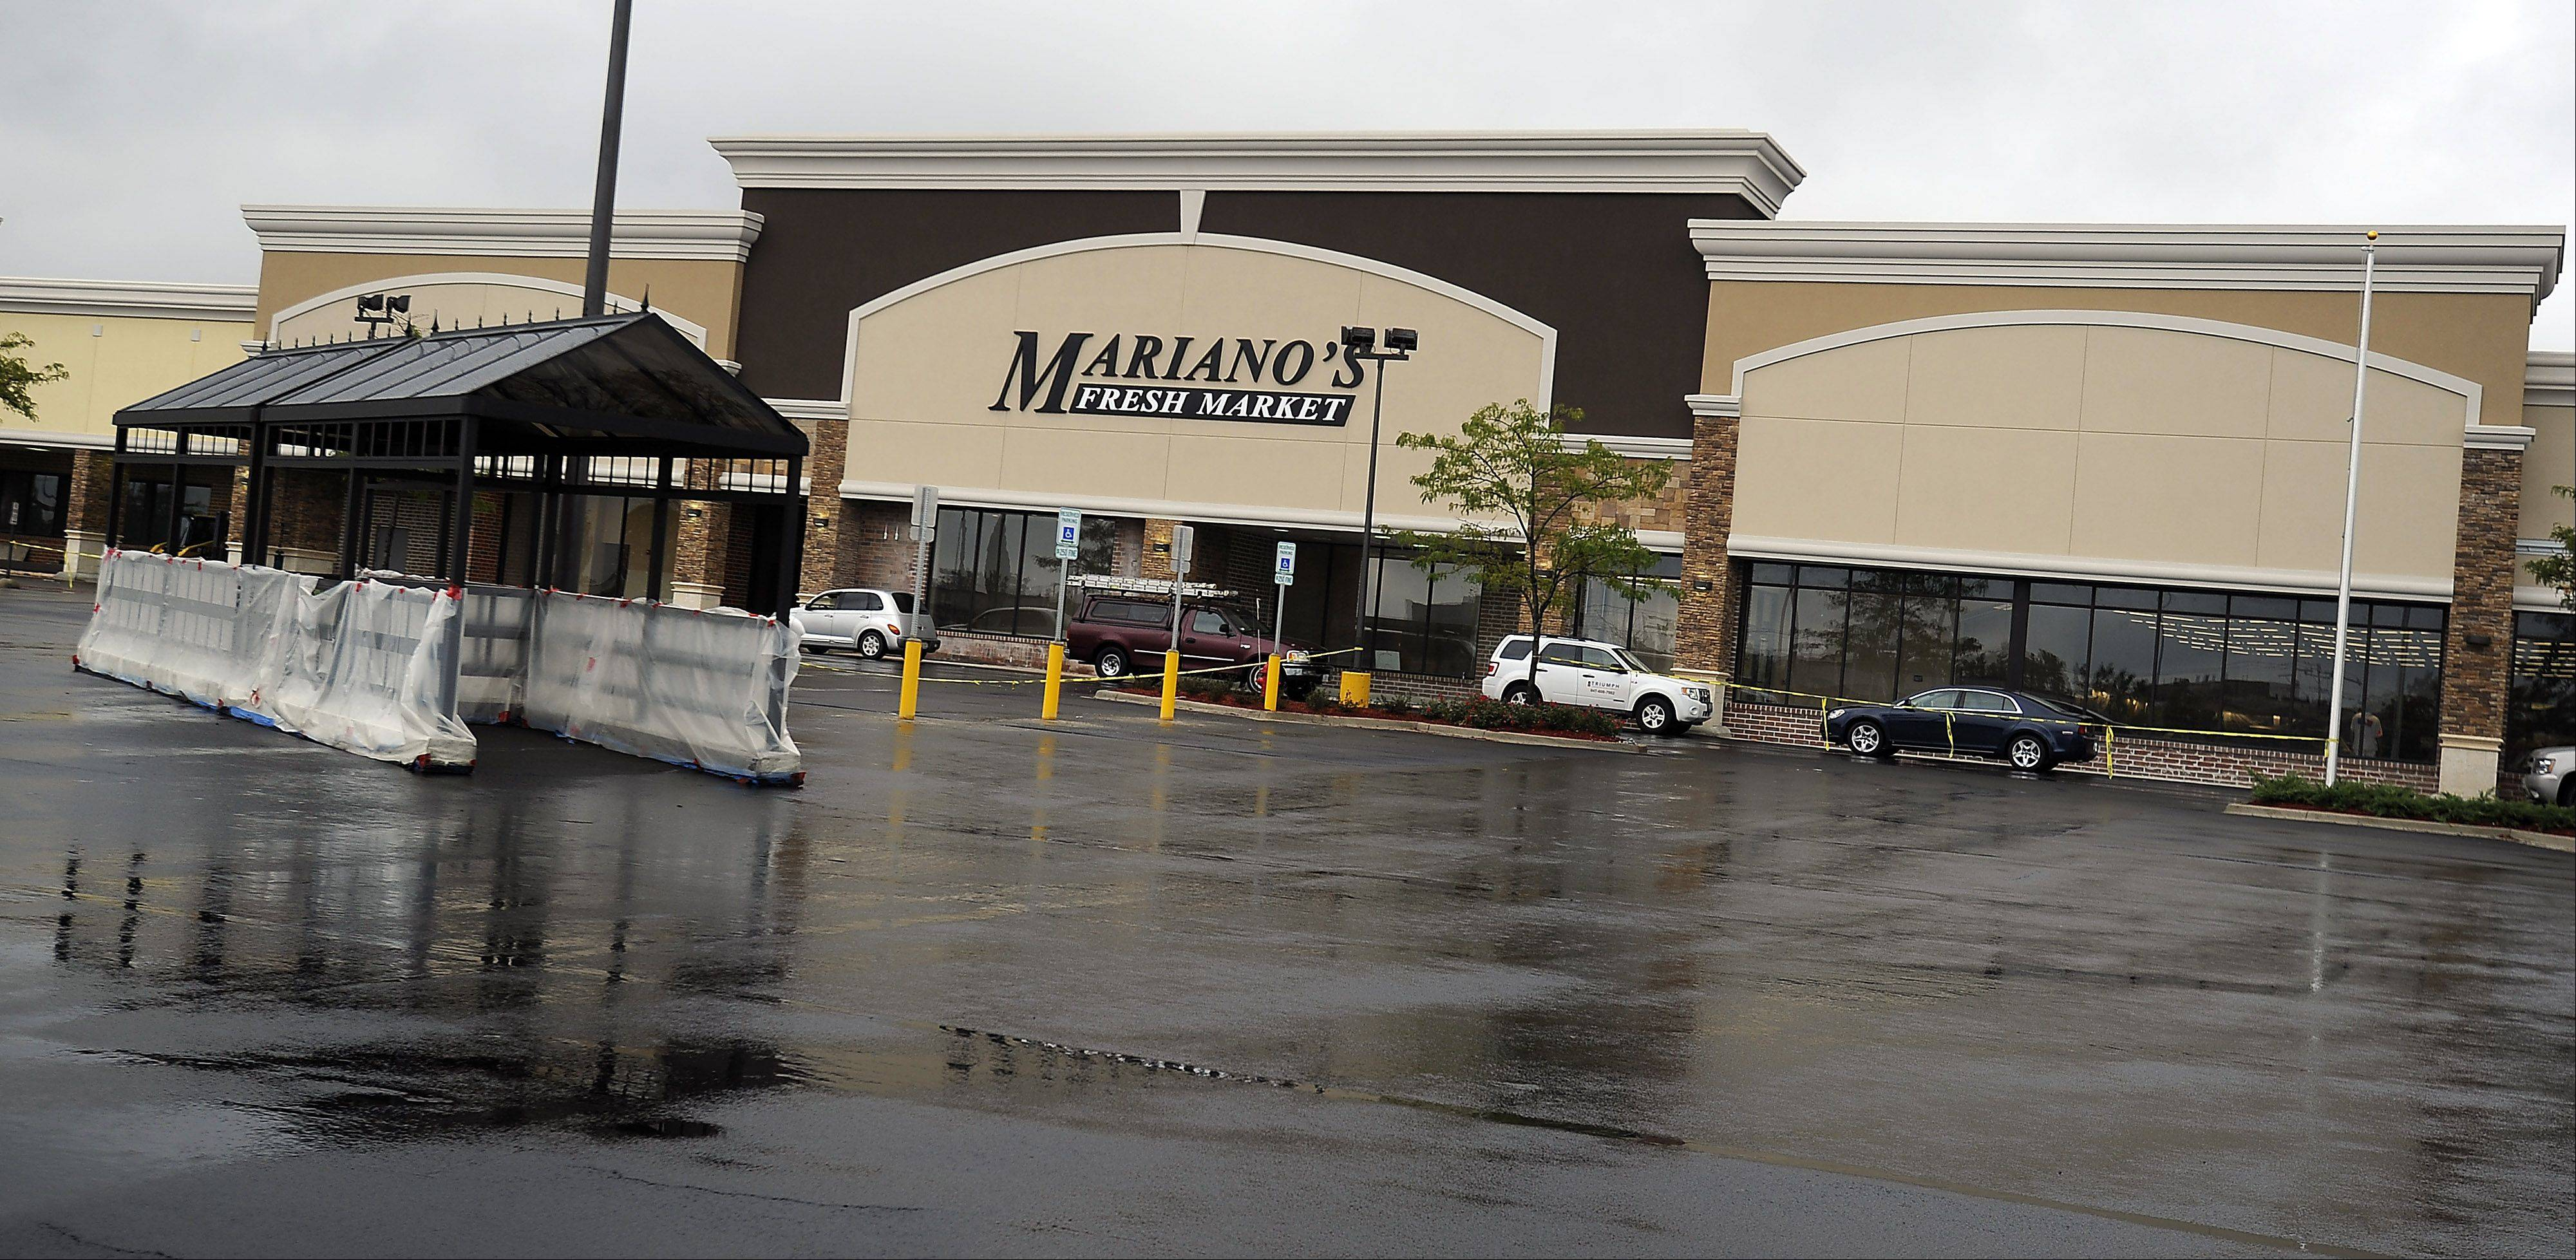 Mariano�s Fresh Market is expected to open a new location in Hoffman Estates near Barrington and Golf roads on Tuesday, Aug. 28, a company spokeswoman said Monday.